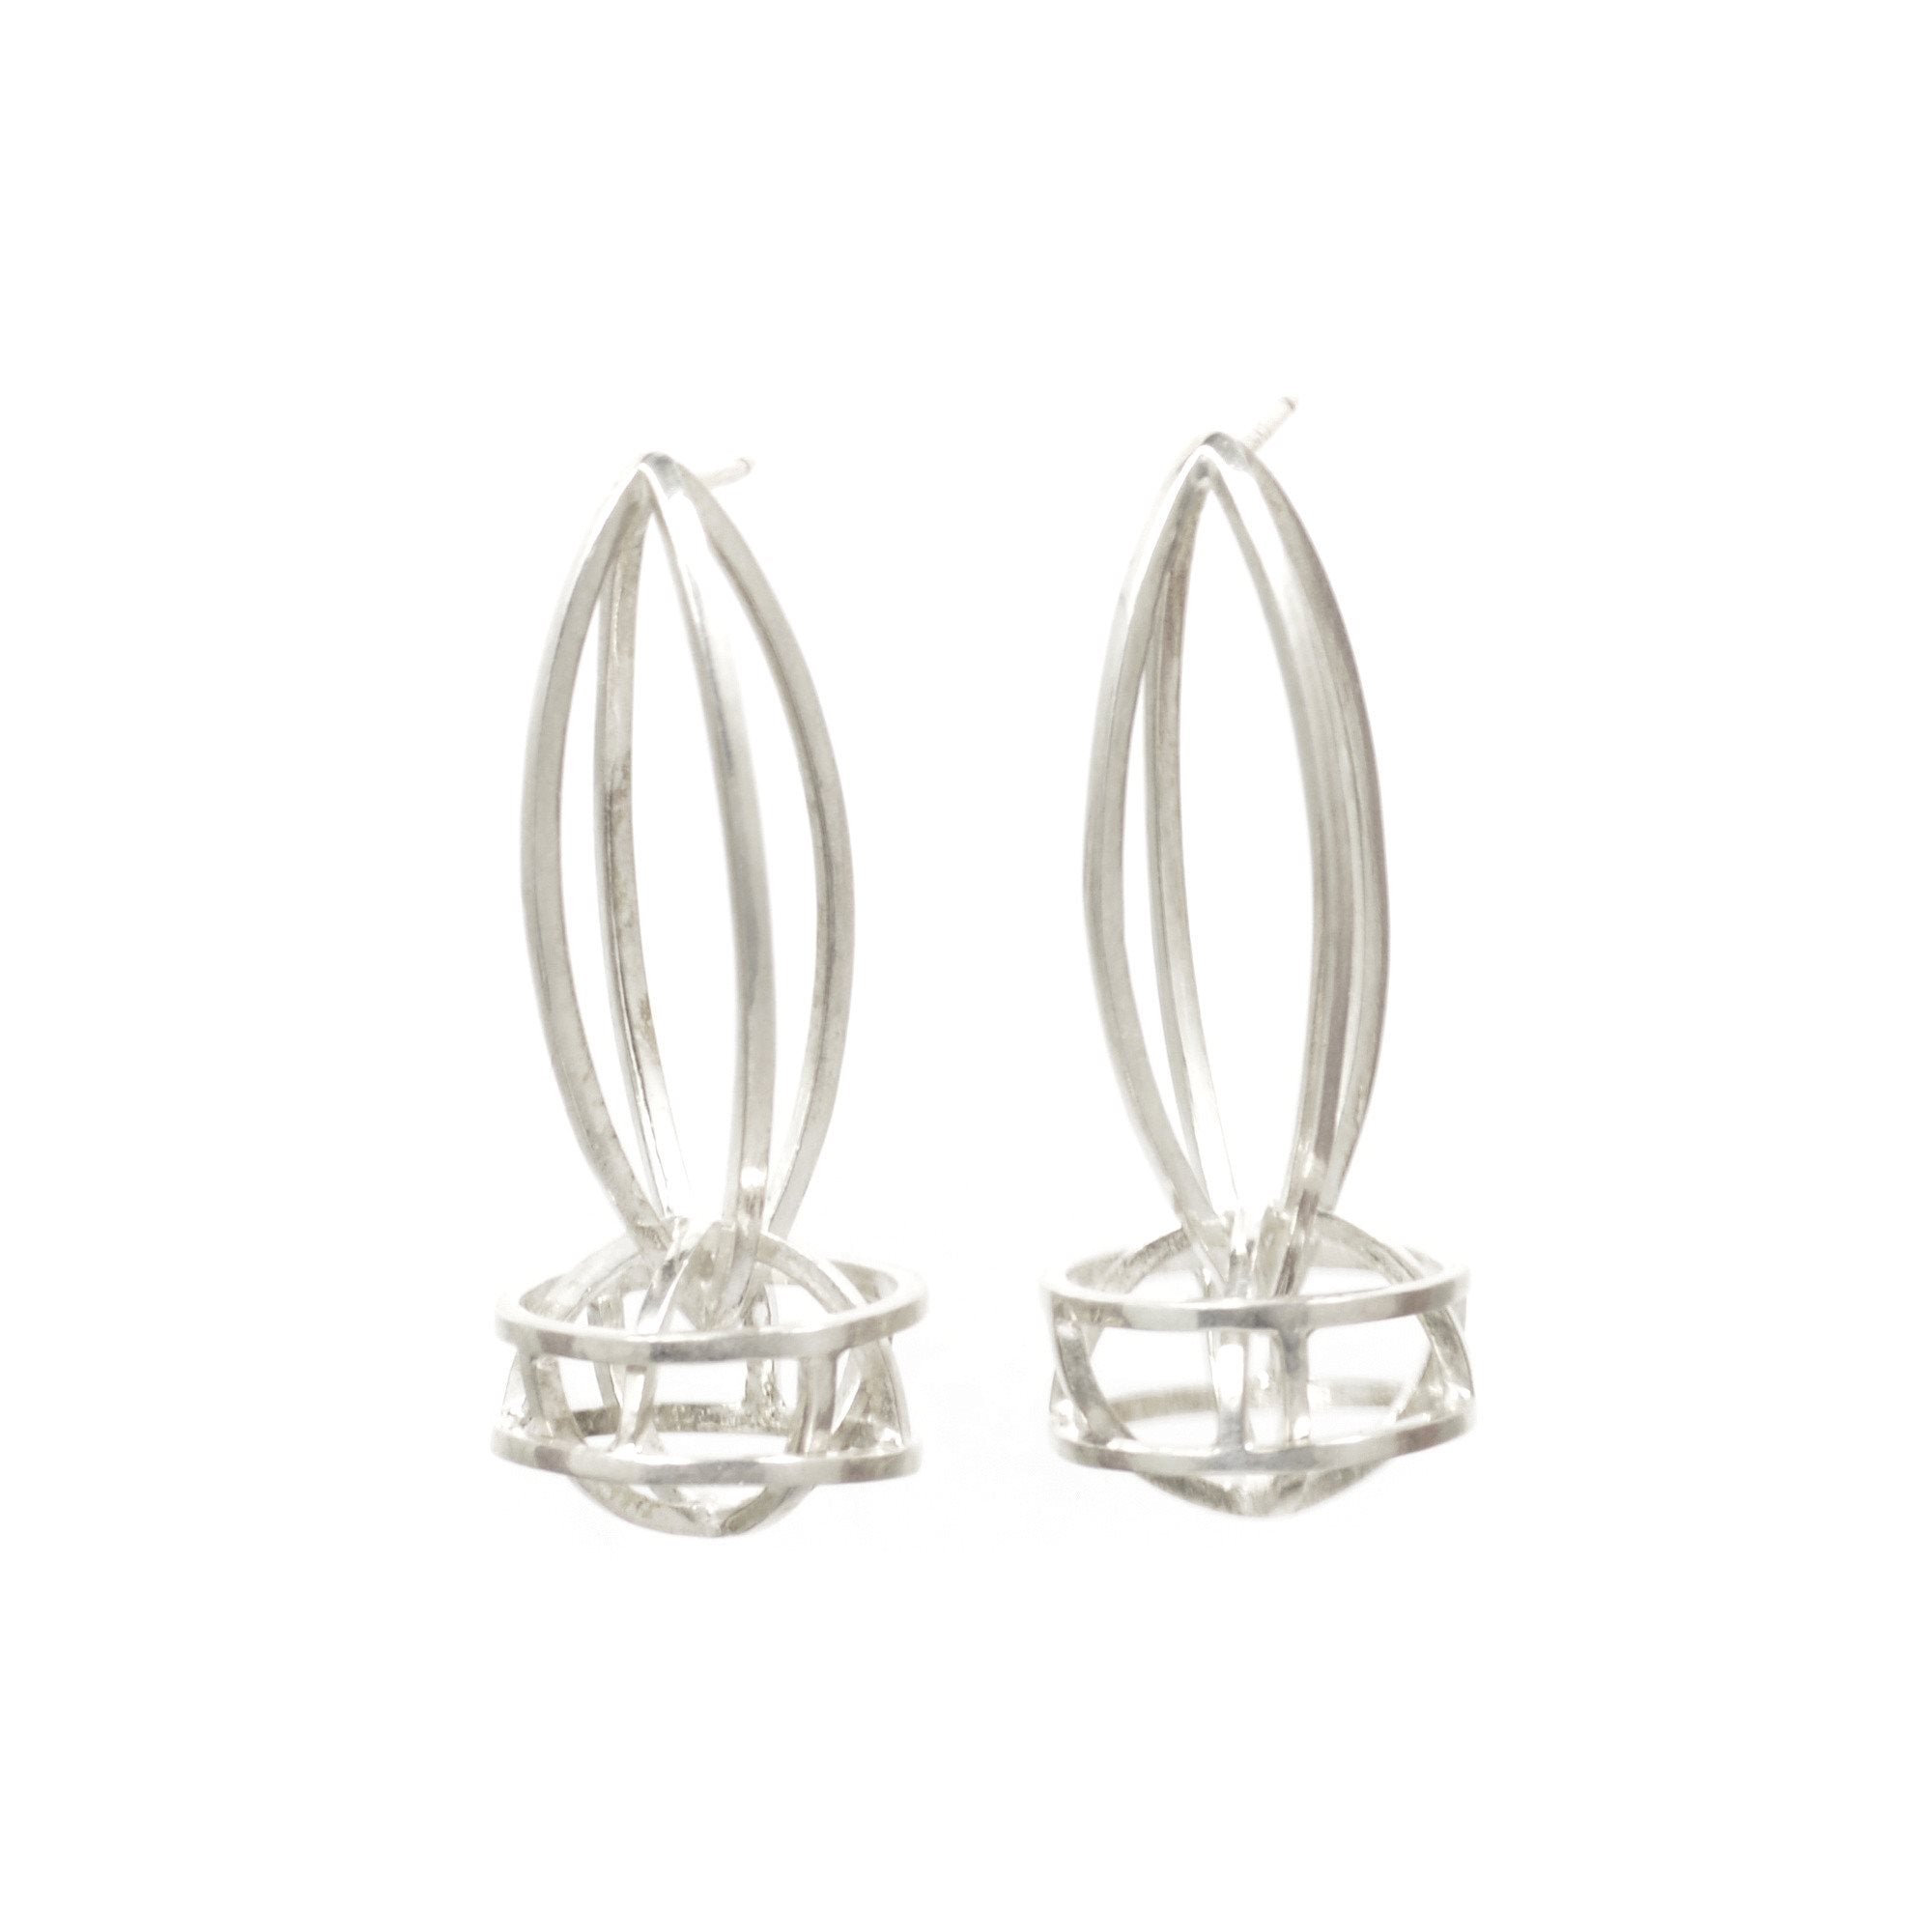 Lattis Link Earrings in Sterling Silver, White Finish